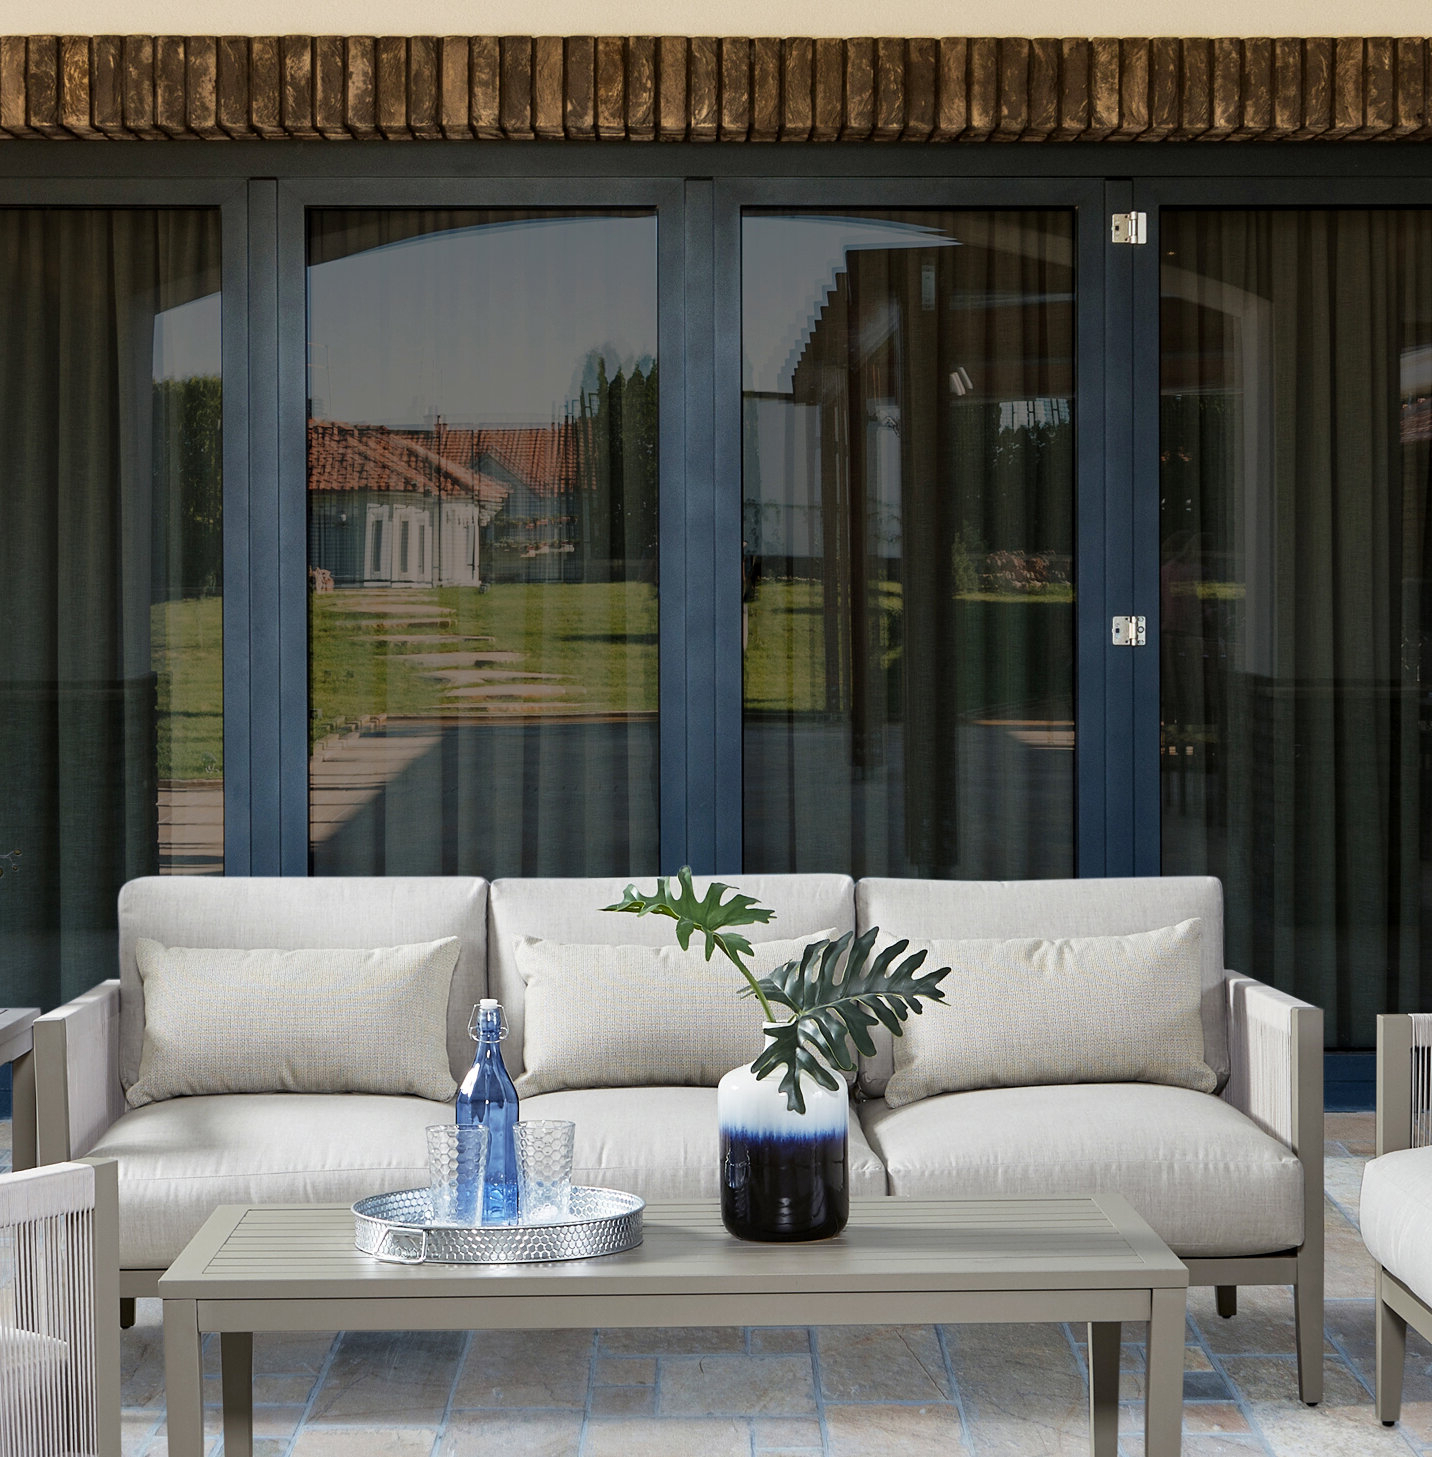 Baca Patio Sofas With Cushions Pertaining To Latest Kari Patio Sofa With Cushion (View 4 of 25)